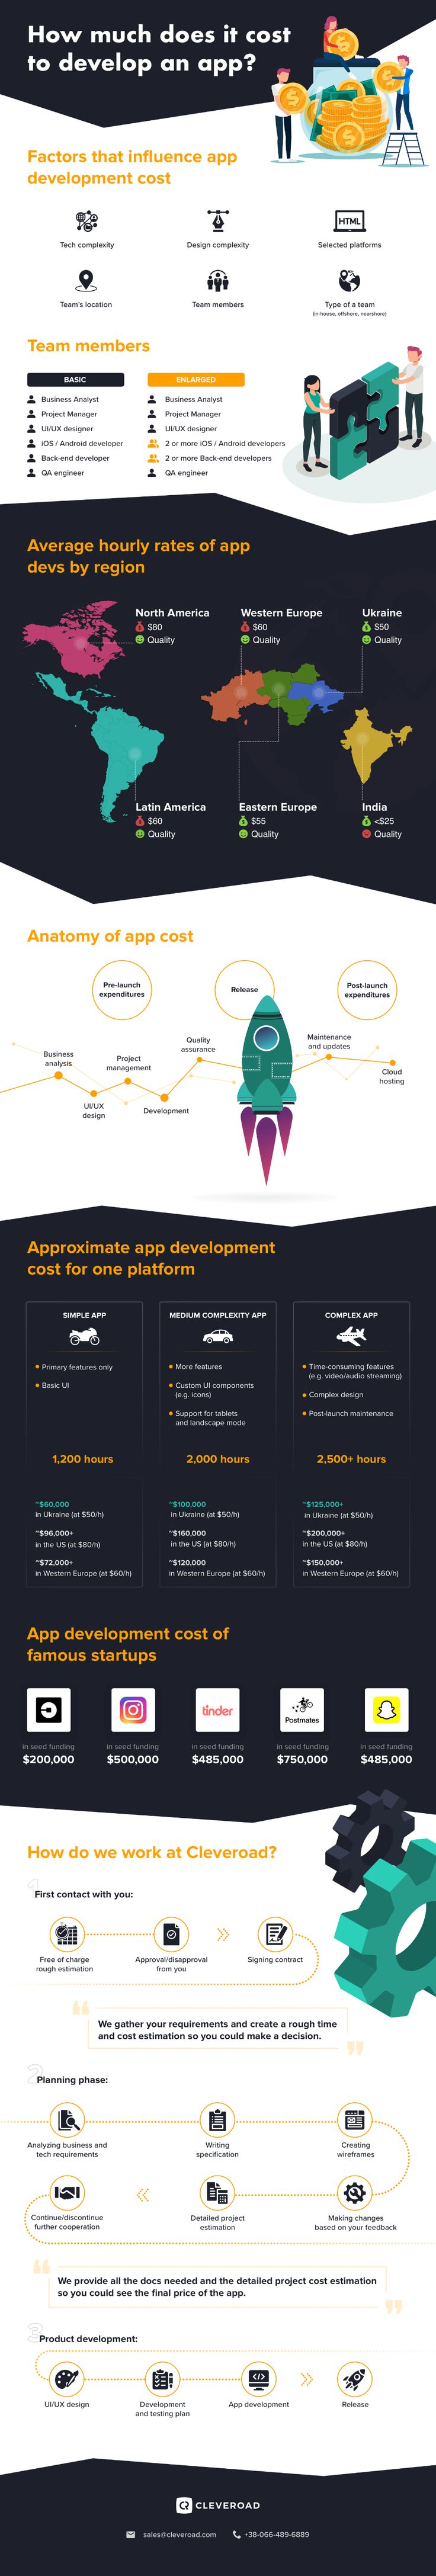 How much does it cost to make an app in 2020? | App, App ...